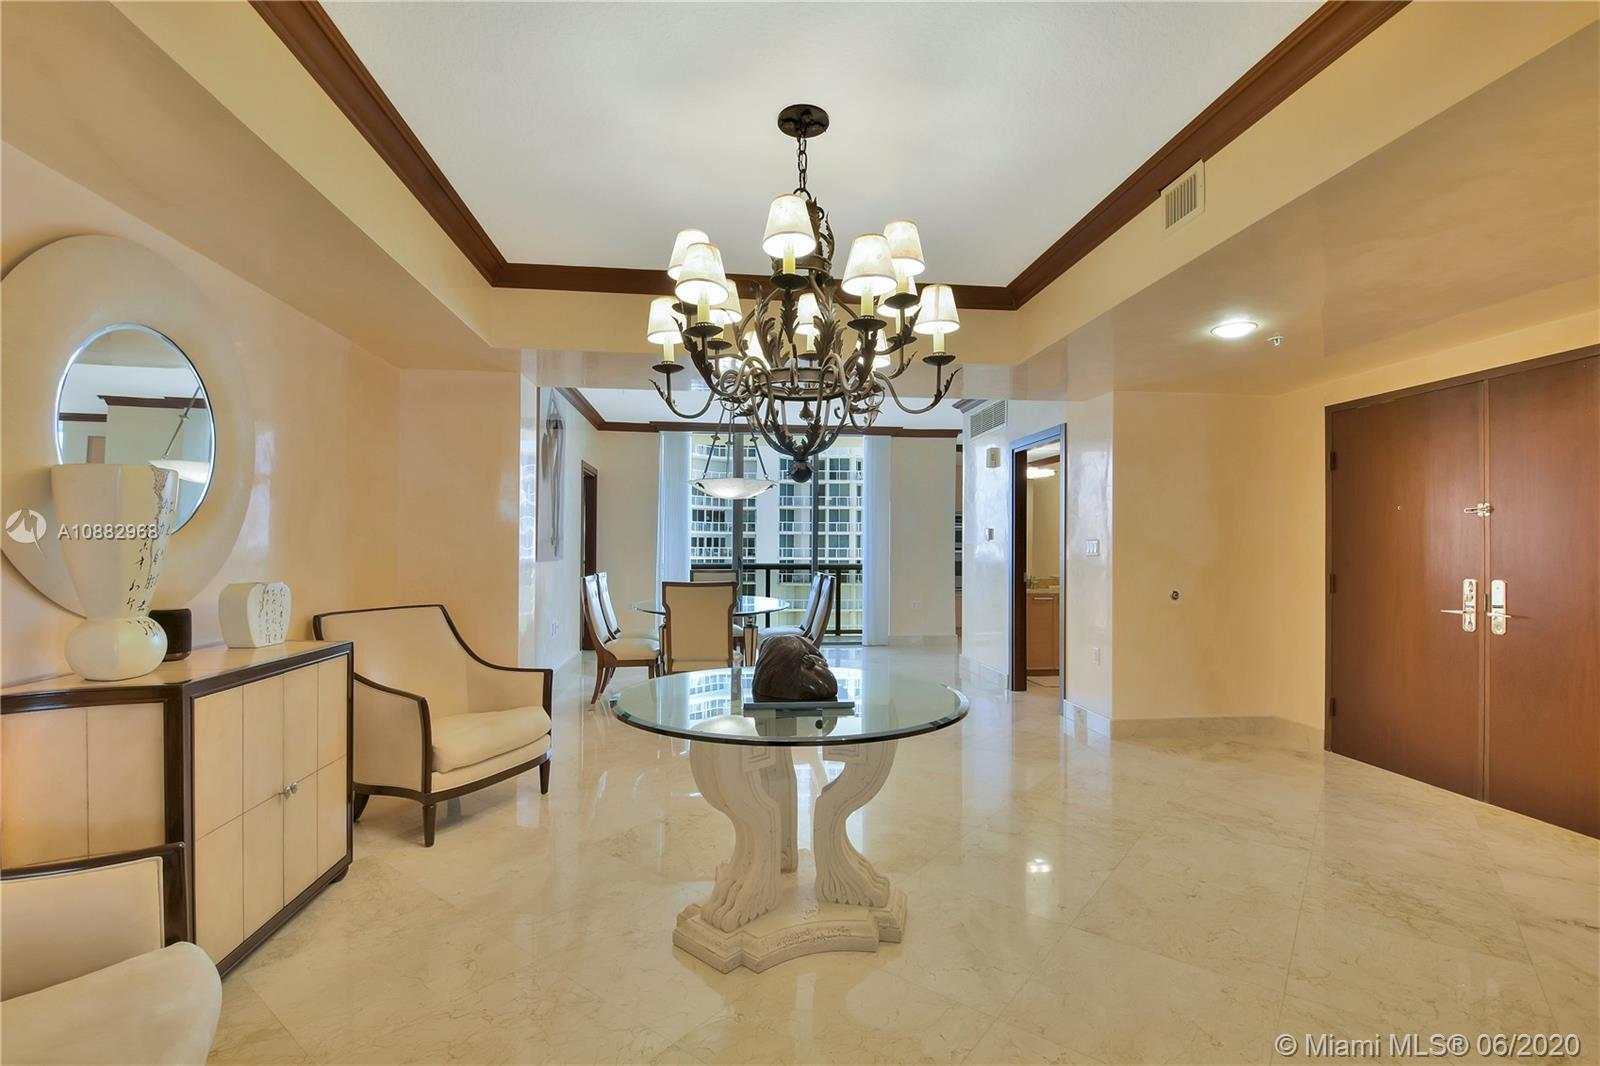 Gorgeously finished and decorated large 2 bedroom 2.5 bath oceanfront condo with a private elevator.